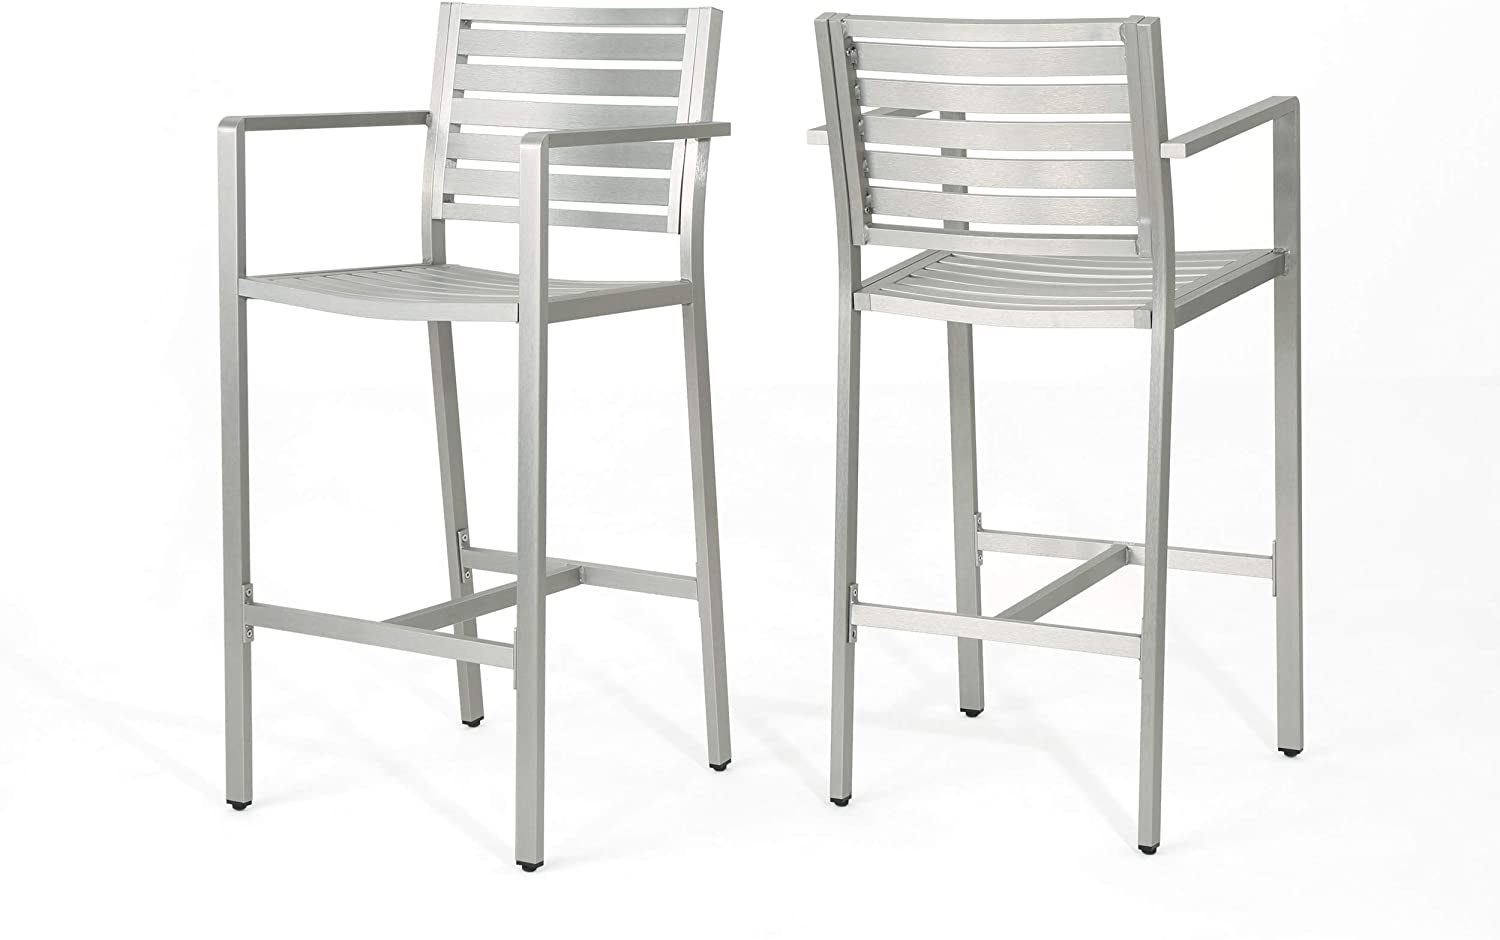 Christopher Knight Home Tammy Coral Outdoor Silver Rust-Proof Aluminum 29.50 Inch Barstools (Set Of 2)